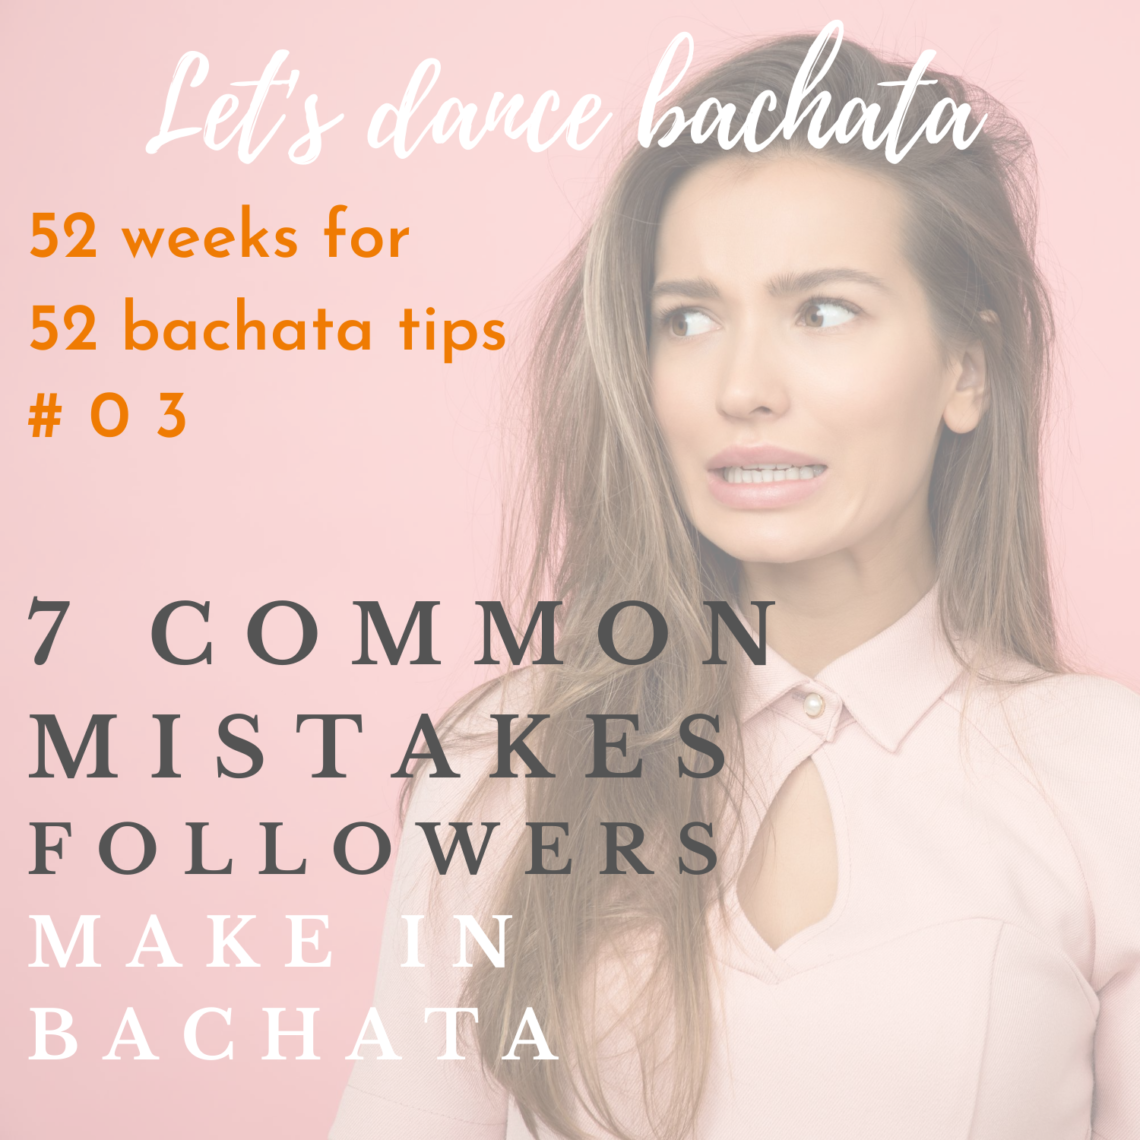 7 common mistakes followers make in bachata